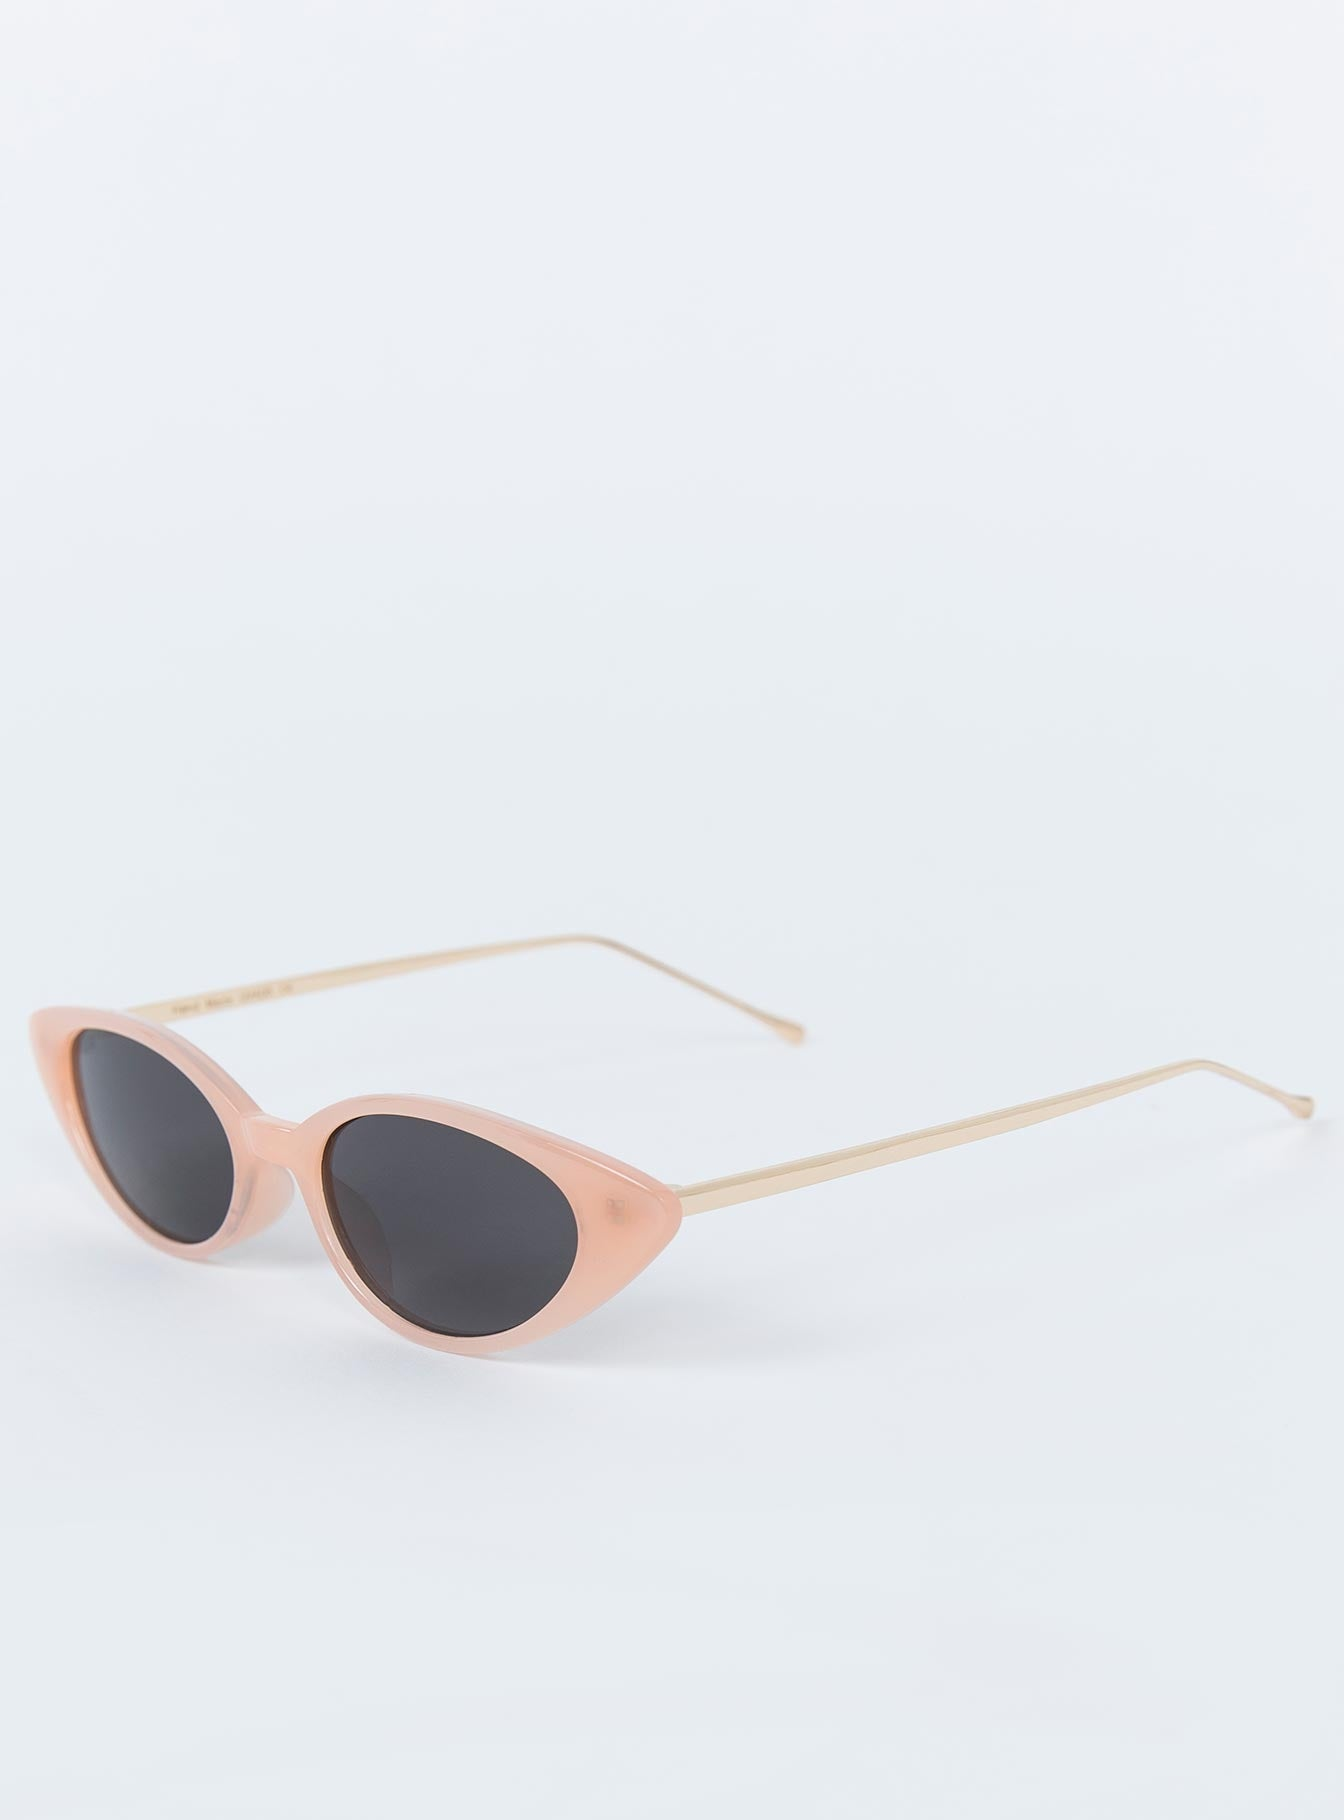 Margo Sunglasses Peach